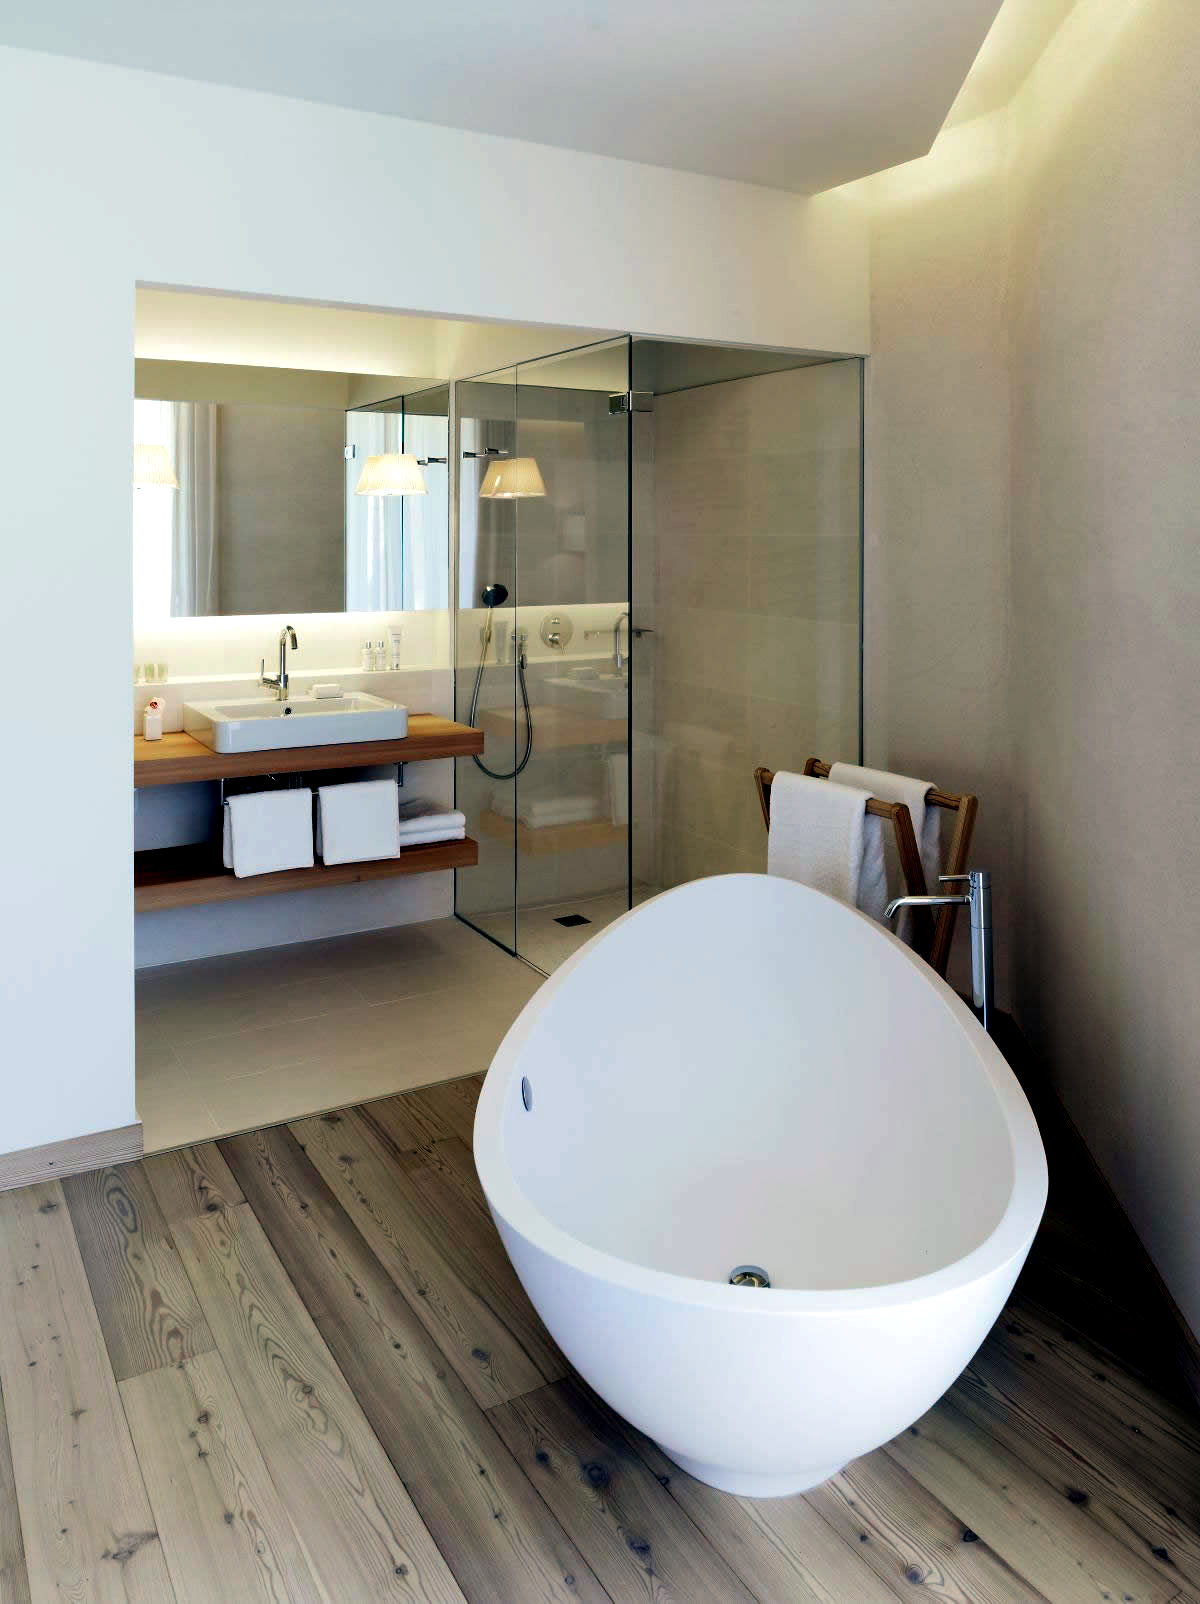 Modern Built In Bath Tub With Space Saving Design